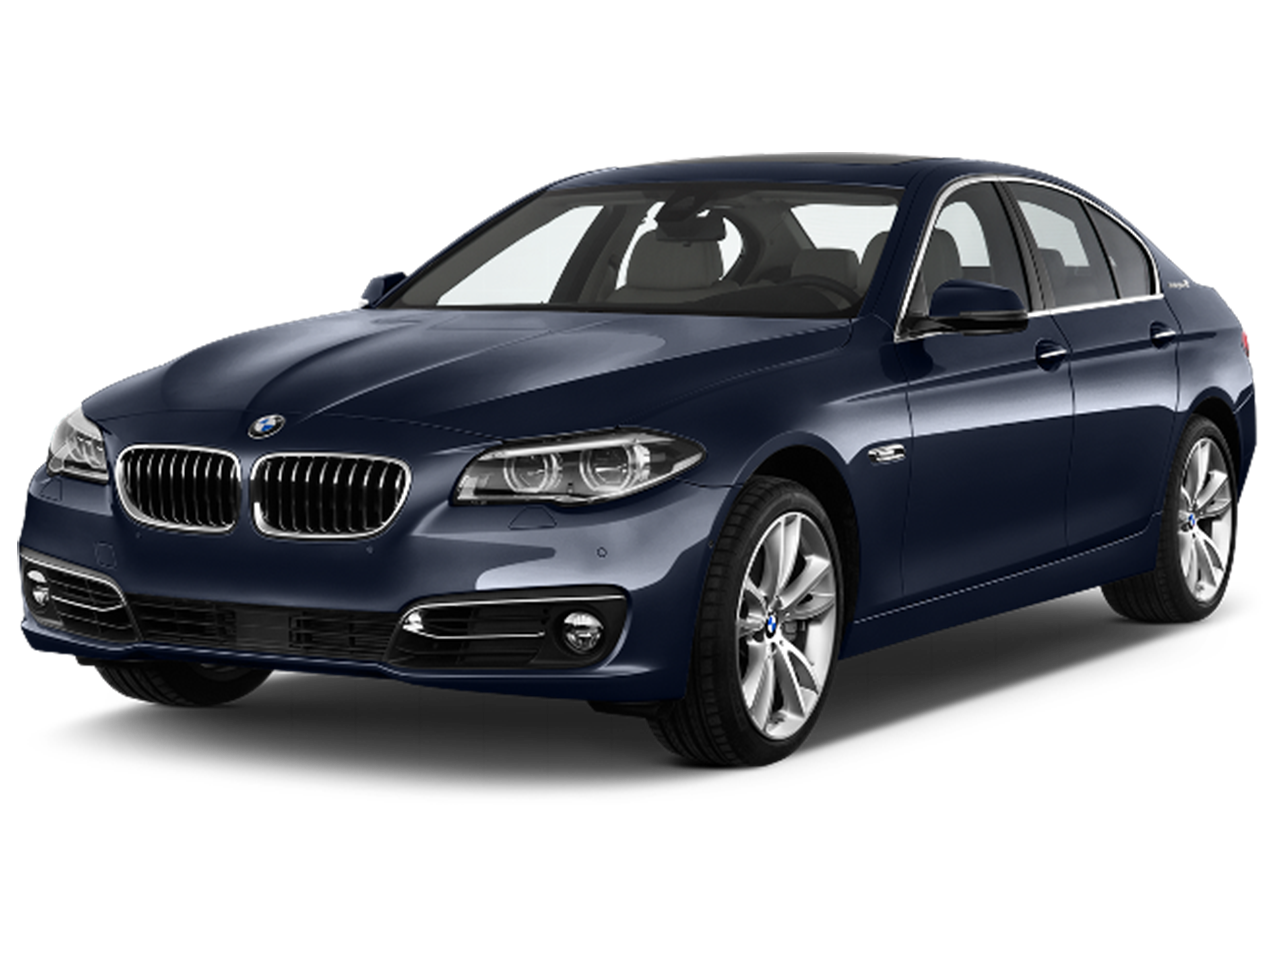 2016 Bmw Activehybrid 5 #11